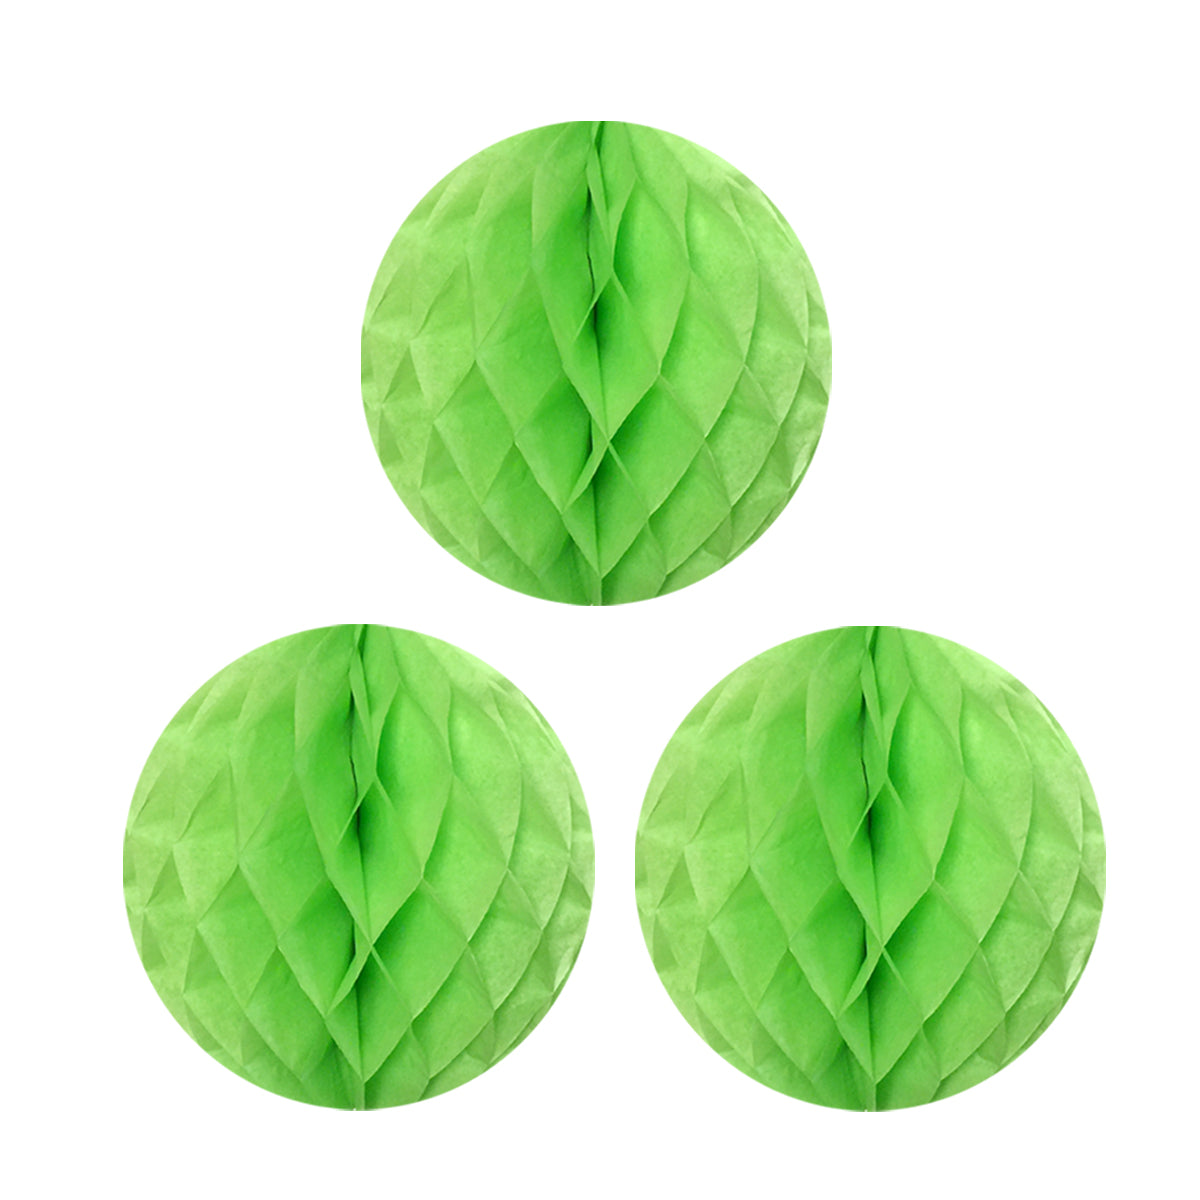 "Wrapables 12"" Set of 3 Tissue Honeycomb Ball Party Decorations"